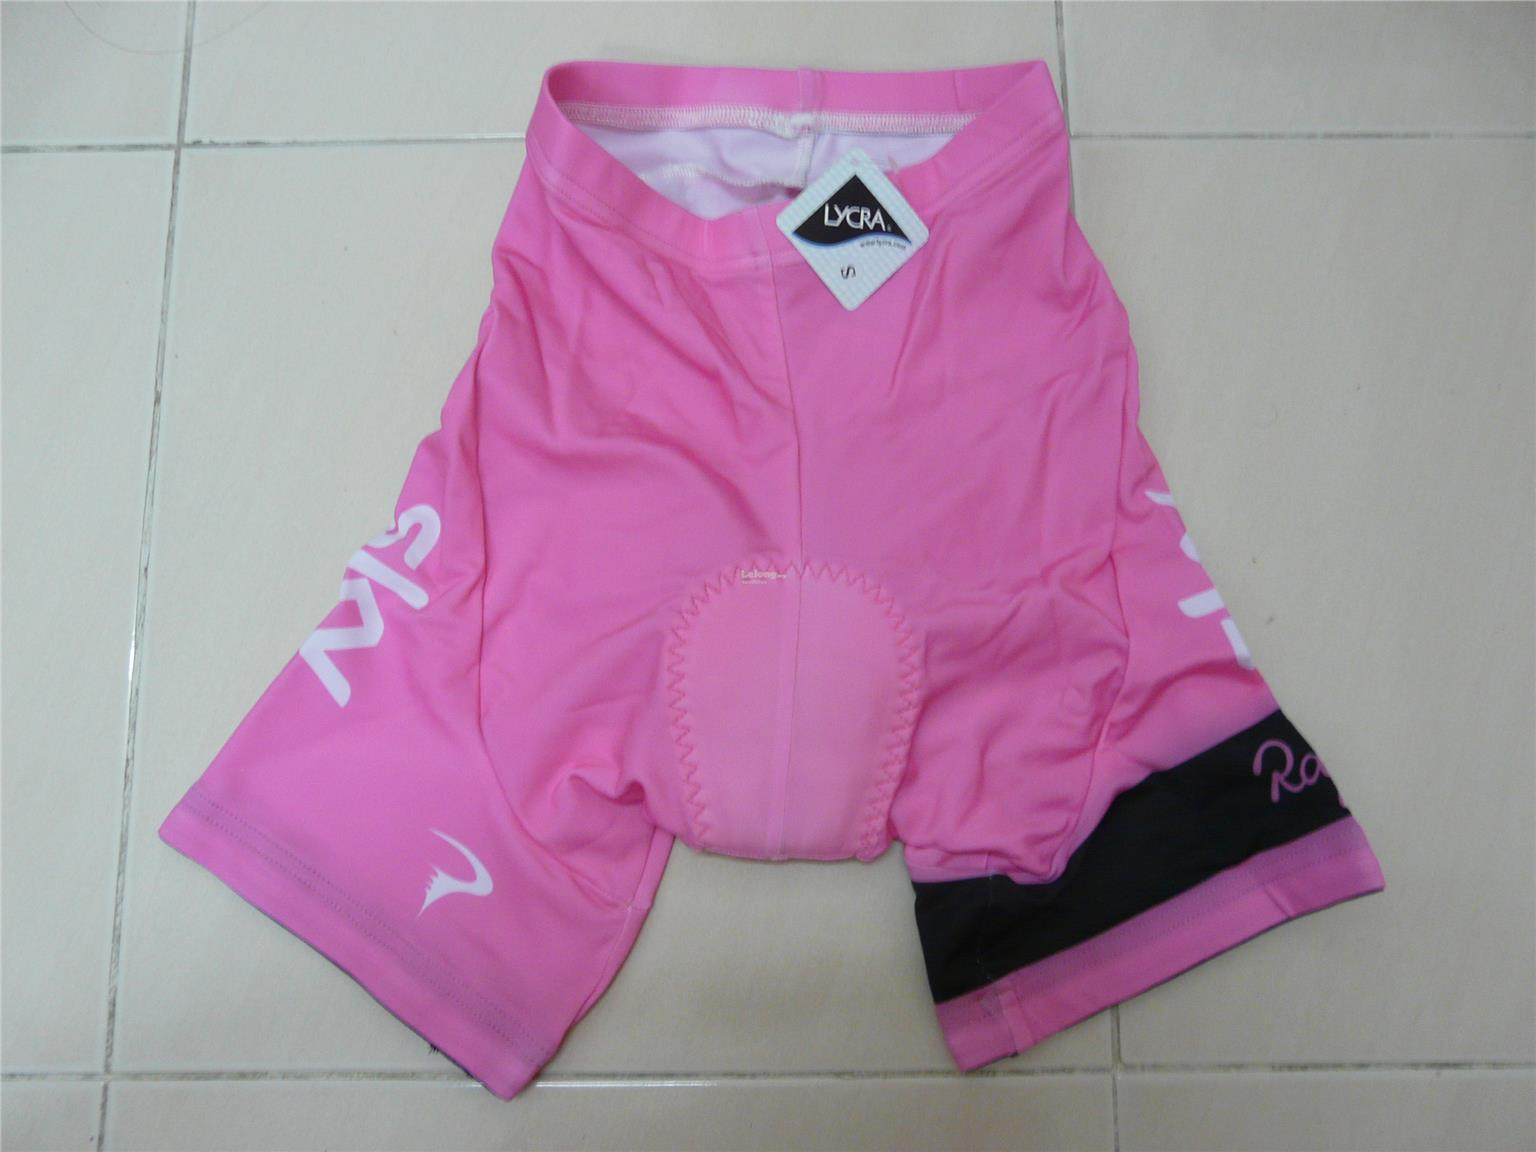 Pink Sky Female Cycling Shorts Size S (Clearance)